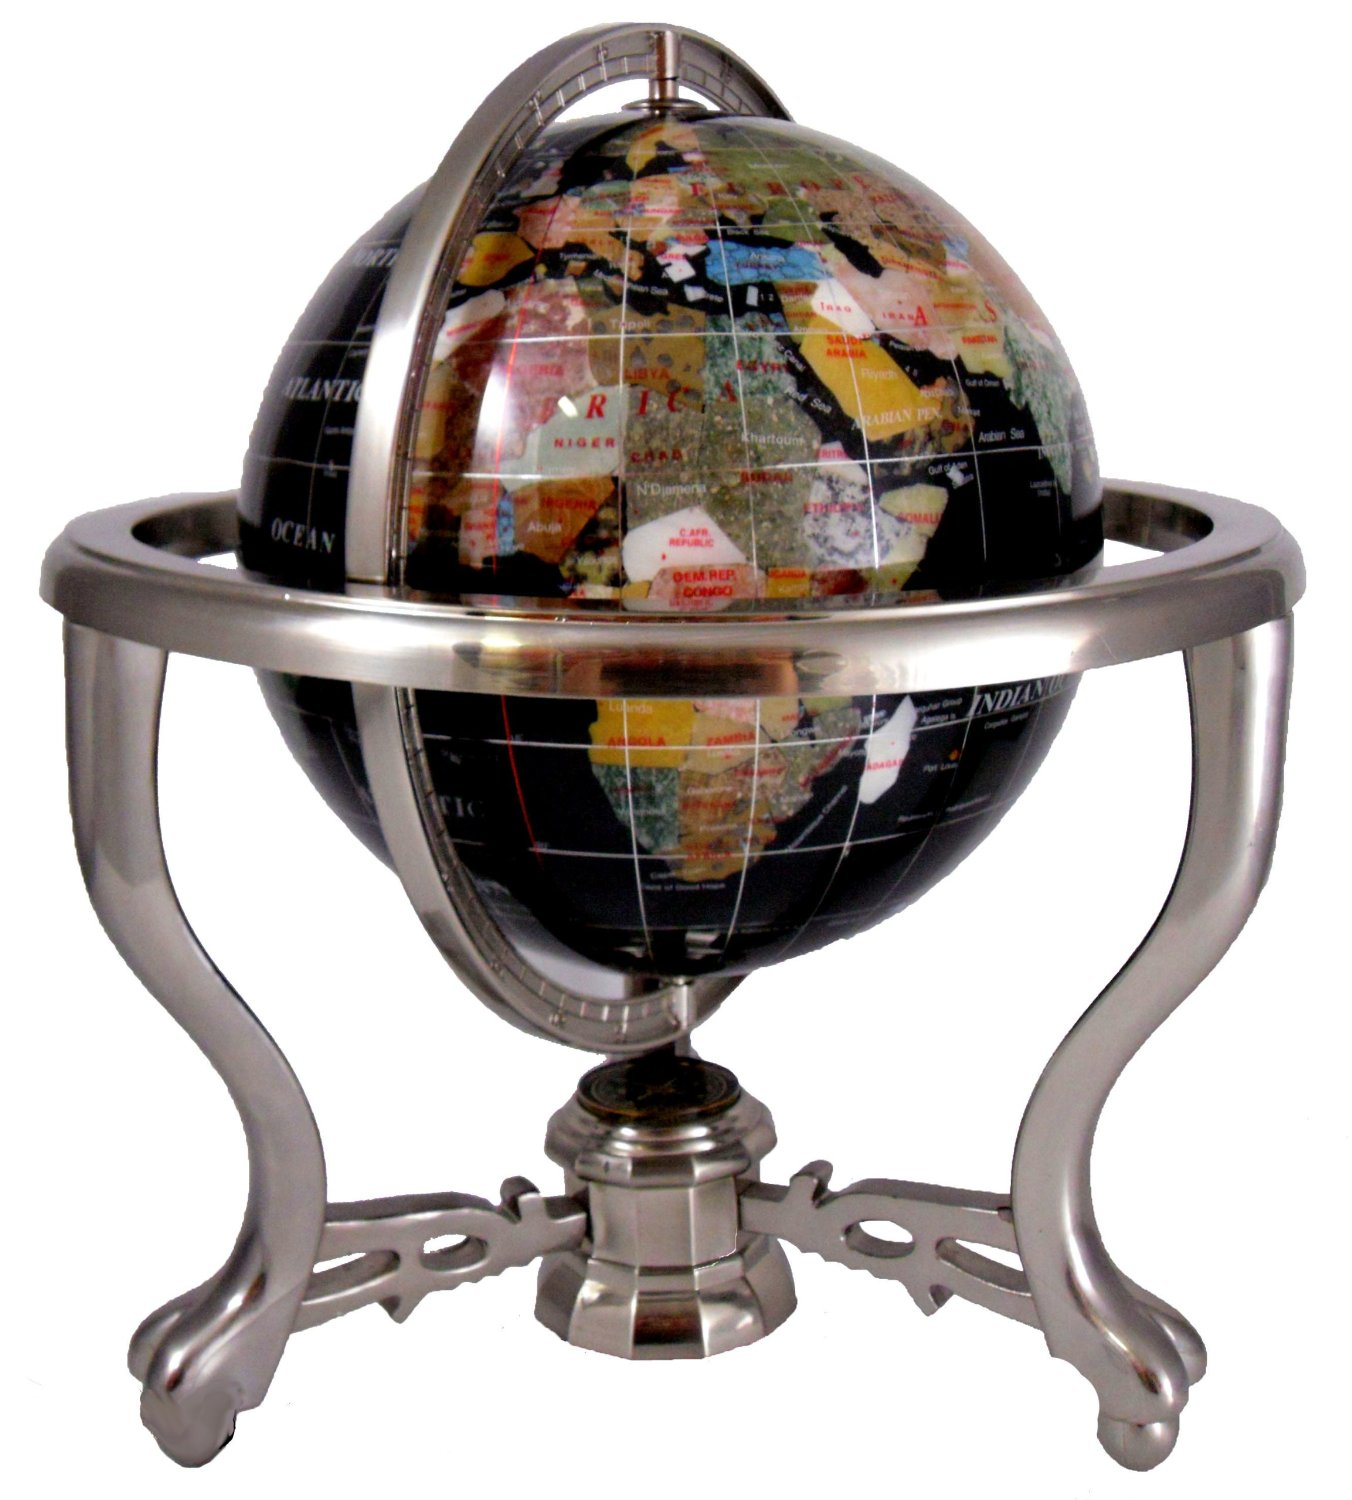 Cheap gemstone world map find gemstone world map deals on line at get quotations 13 black opalite gemstone world map globe silver stand with compass gumiabroncs Image collections